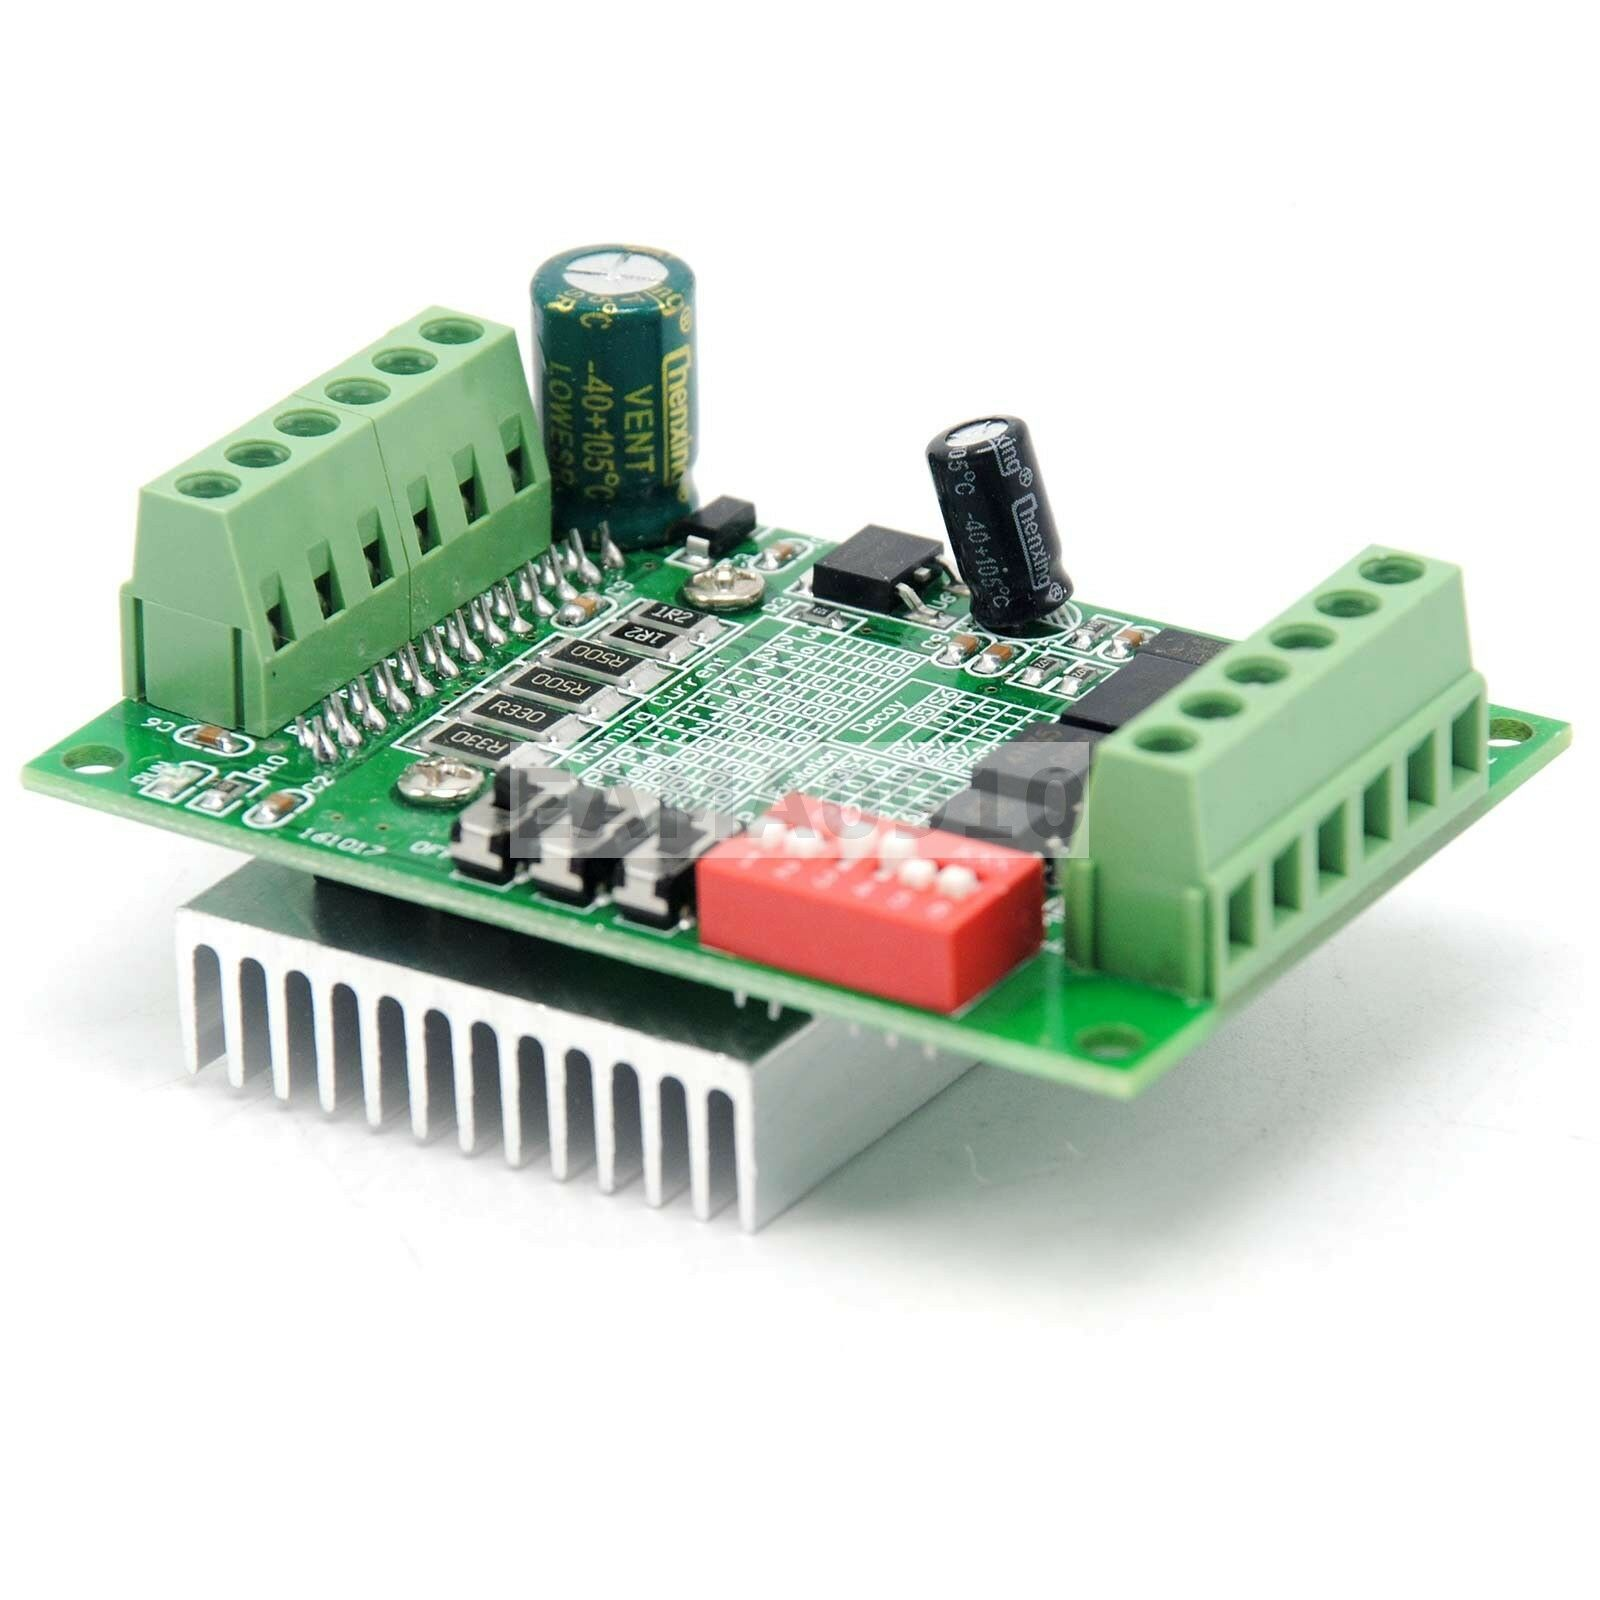 Cnc Router Single 1 Axis 3a Tb6560 Stepper Motor Driver Controller Board New Picclick